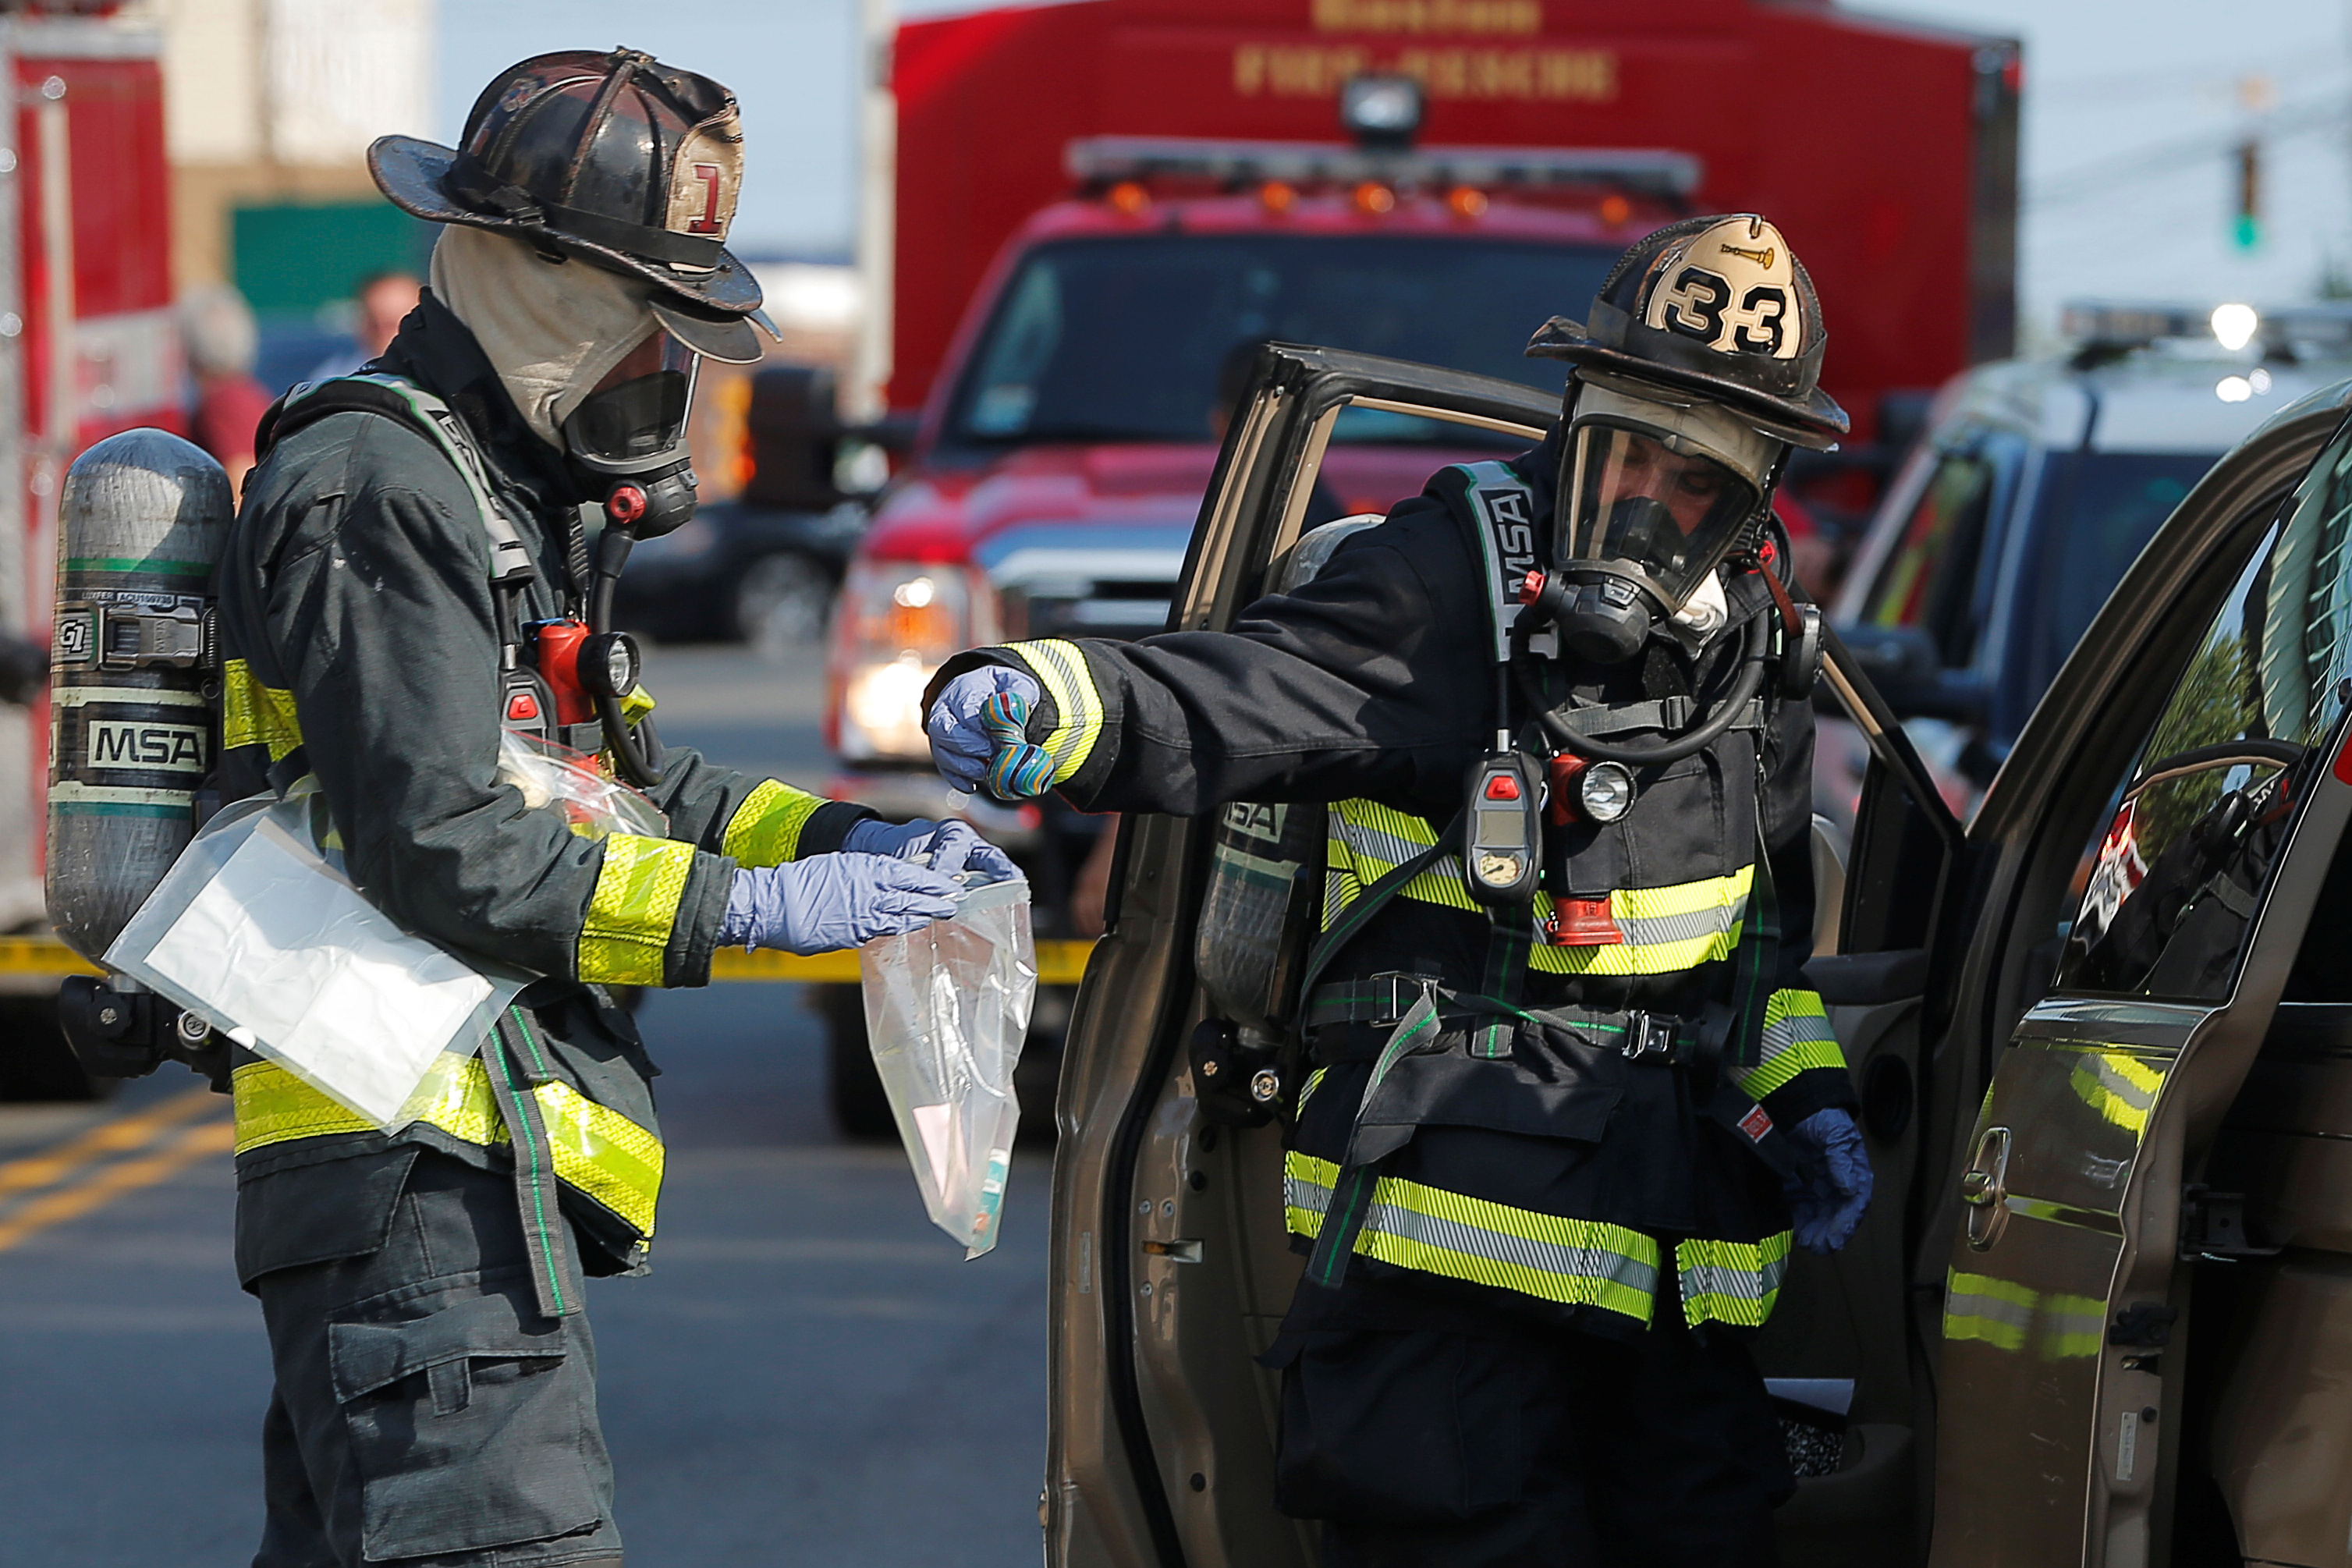 Firefighters in hazmat protection remove items from a vehicle in which several drug overdose victims were found, in addition to a powder believed to be fentanyl, in Chelsea, Massachusetts, U.S., August 4, 2017. REUTERS/Brian Snyder - RC1C0CD8F0B0